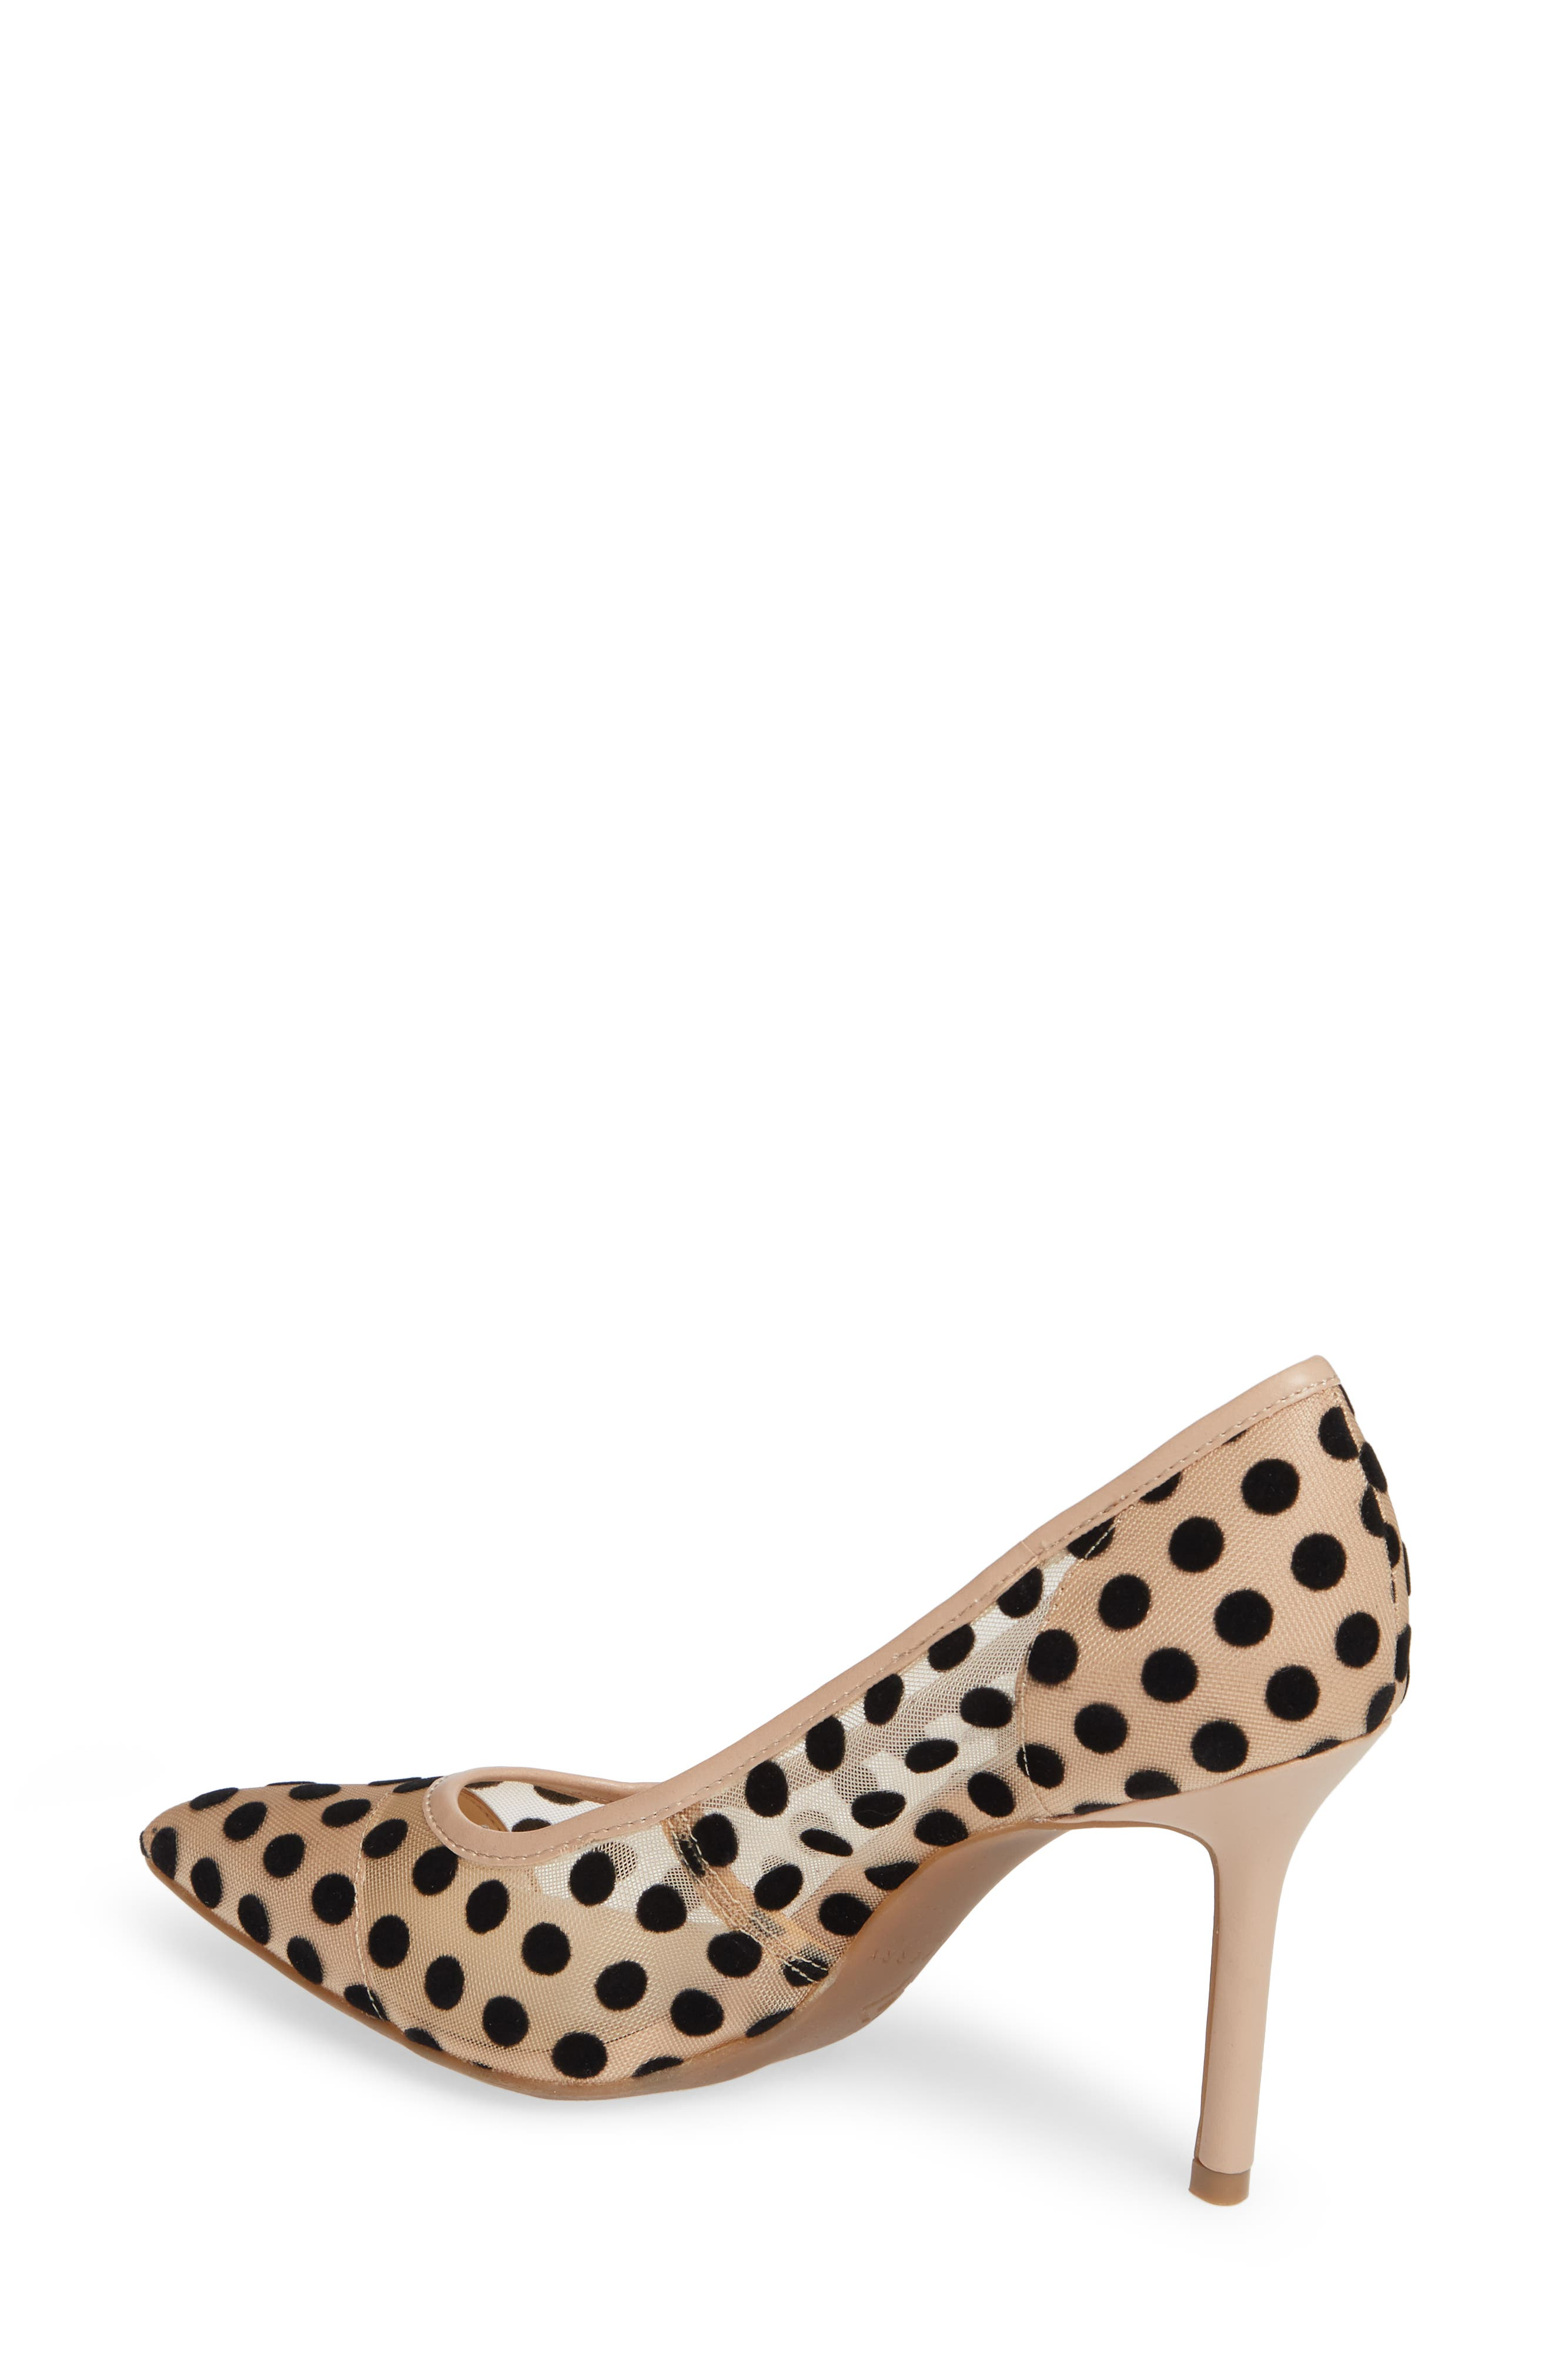 KATY PERRY, Pointy Toe Pump, Alternate thumbnail 2, color, 270